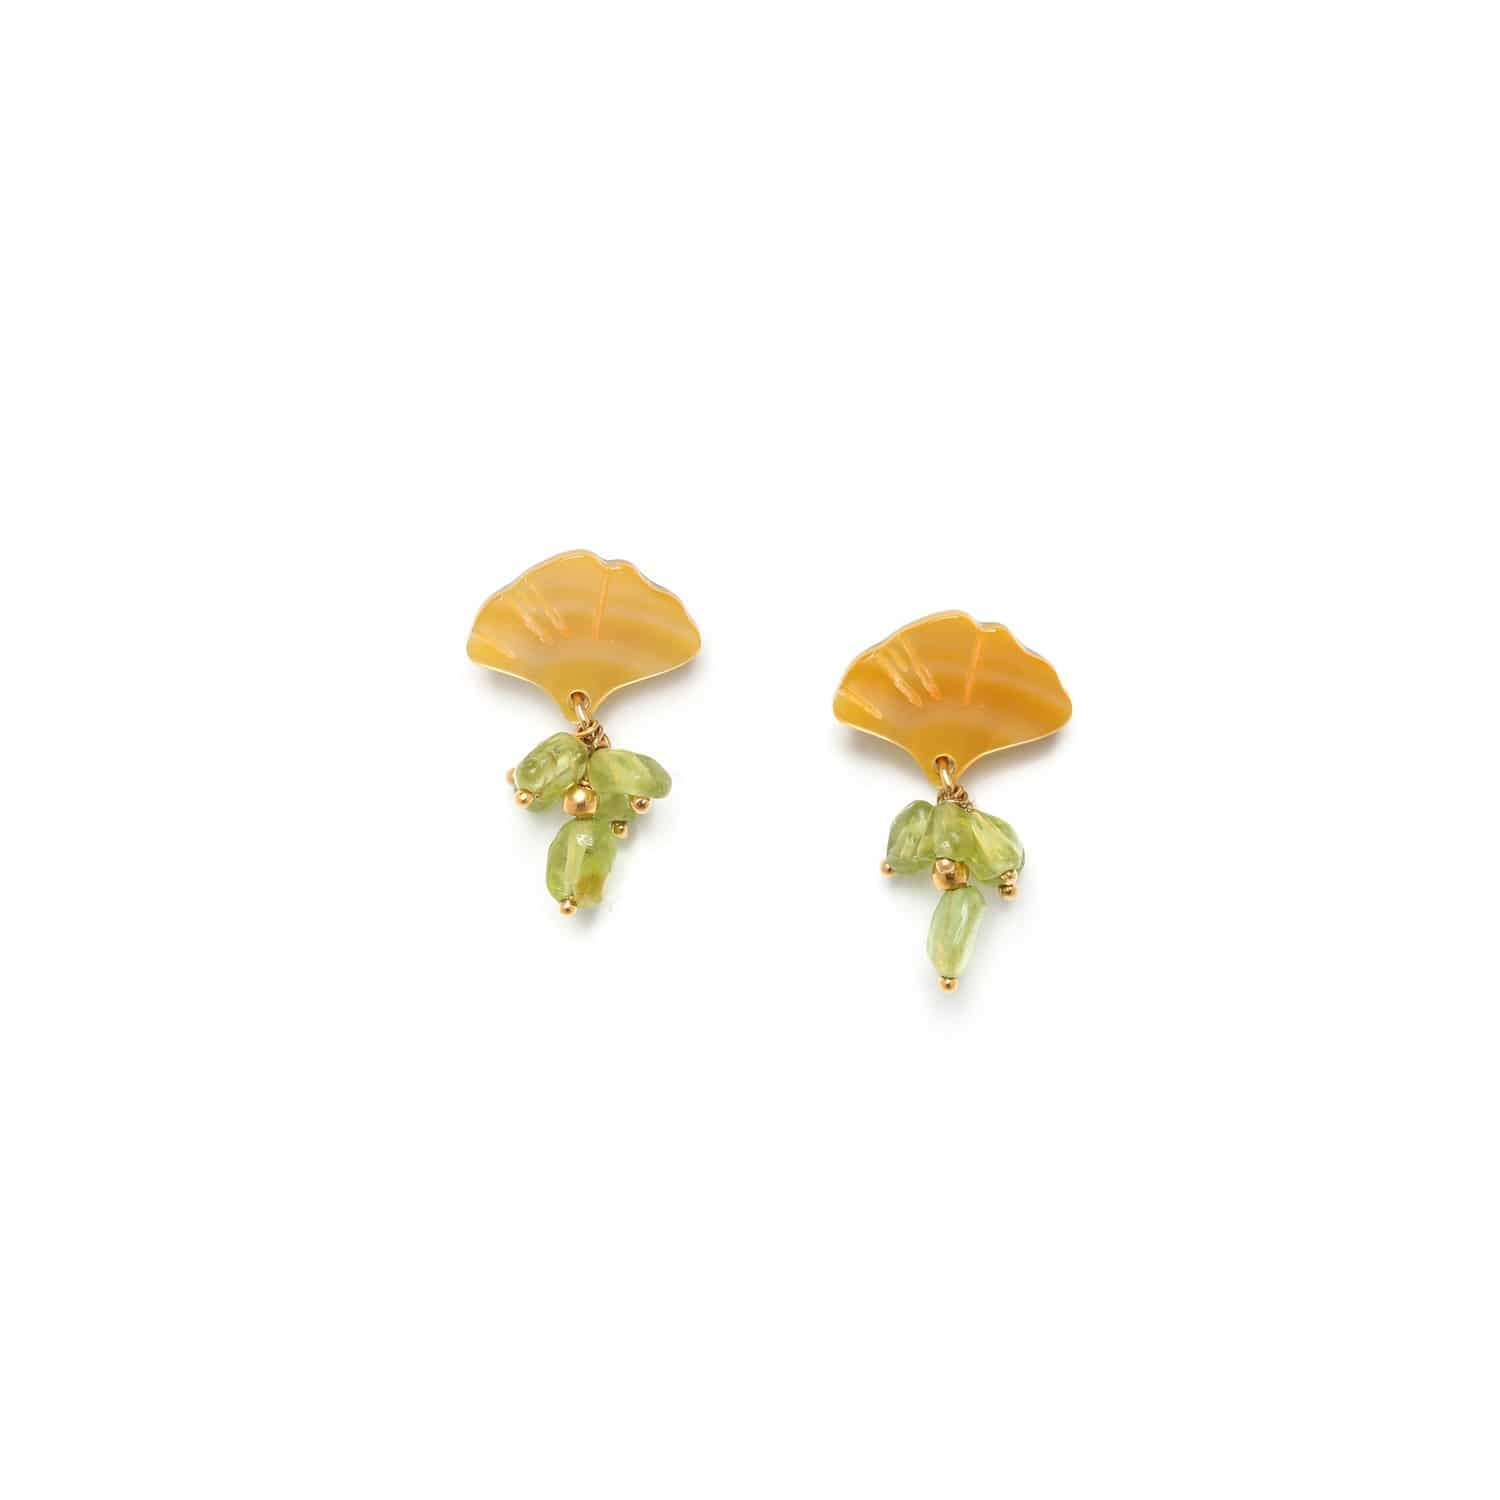 GINKGO peridot grape earrings with leaf top